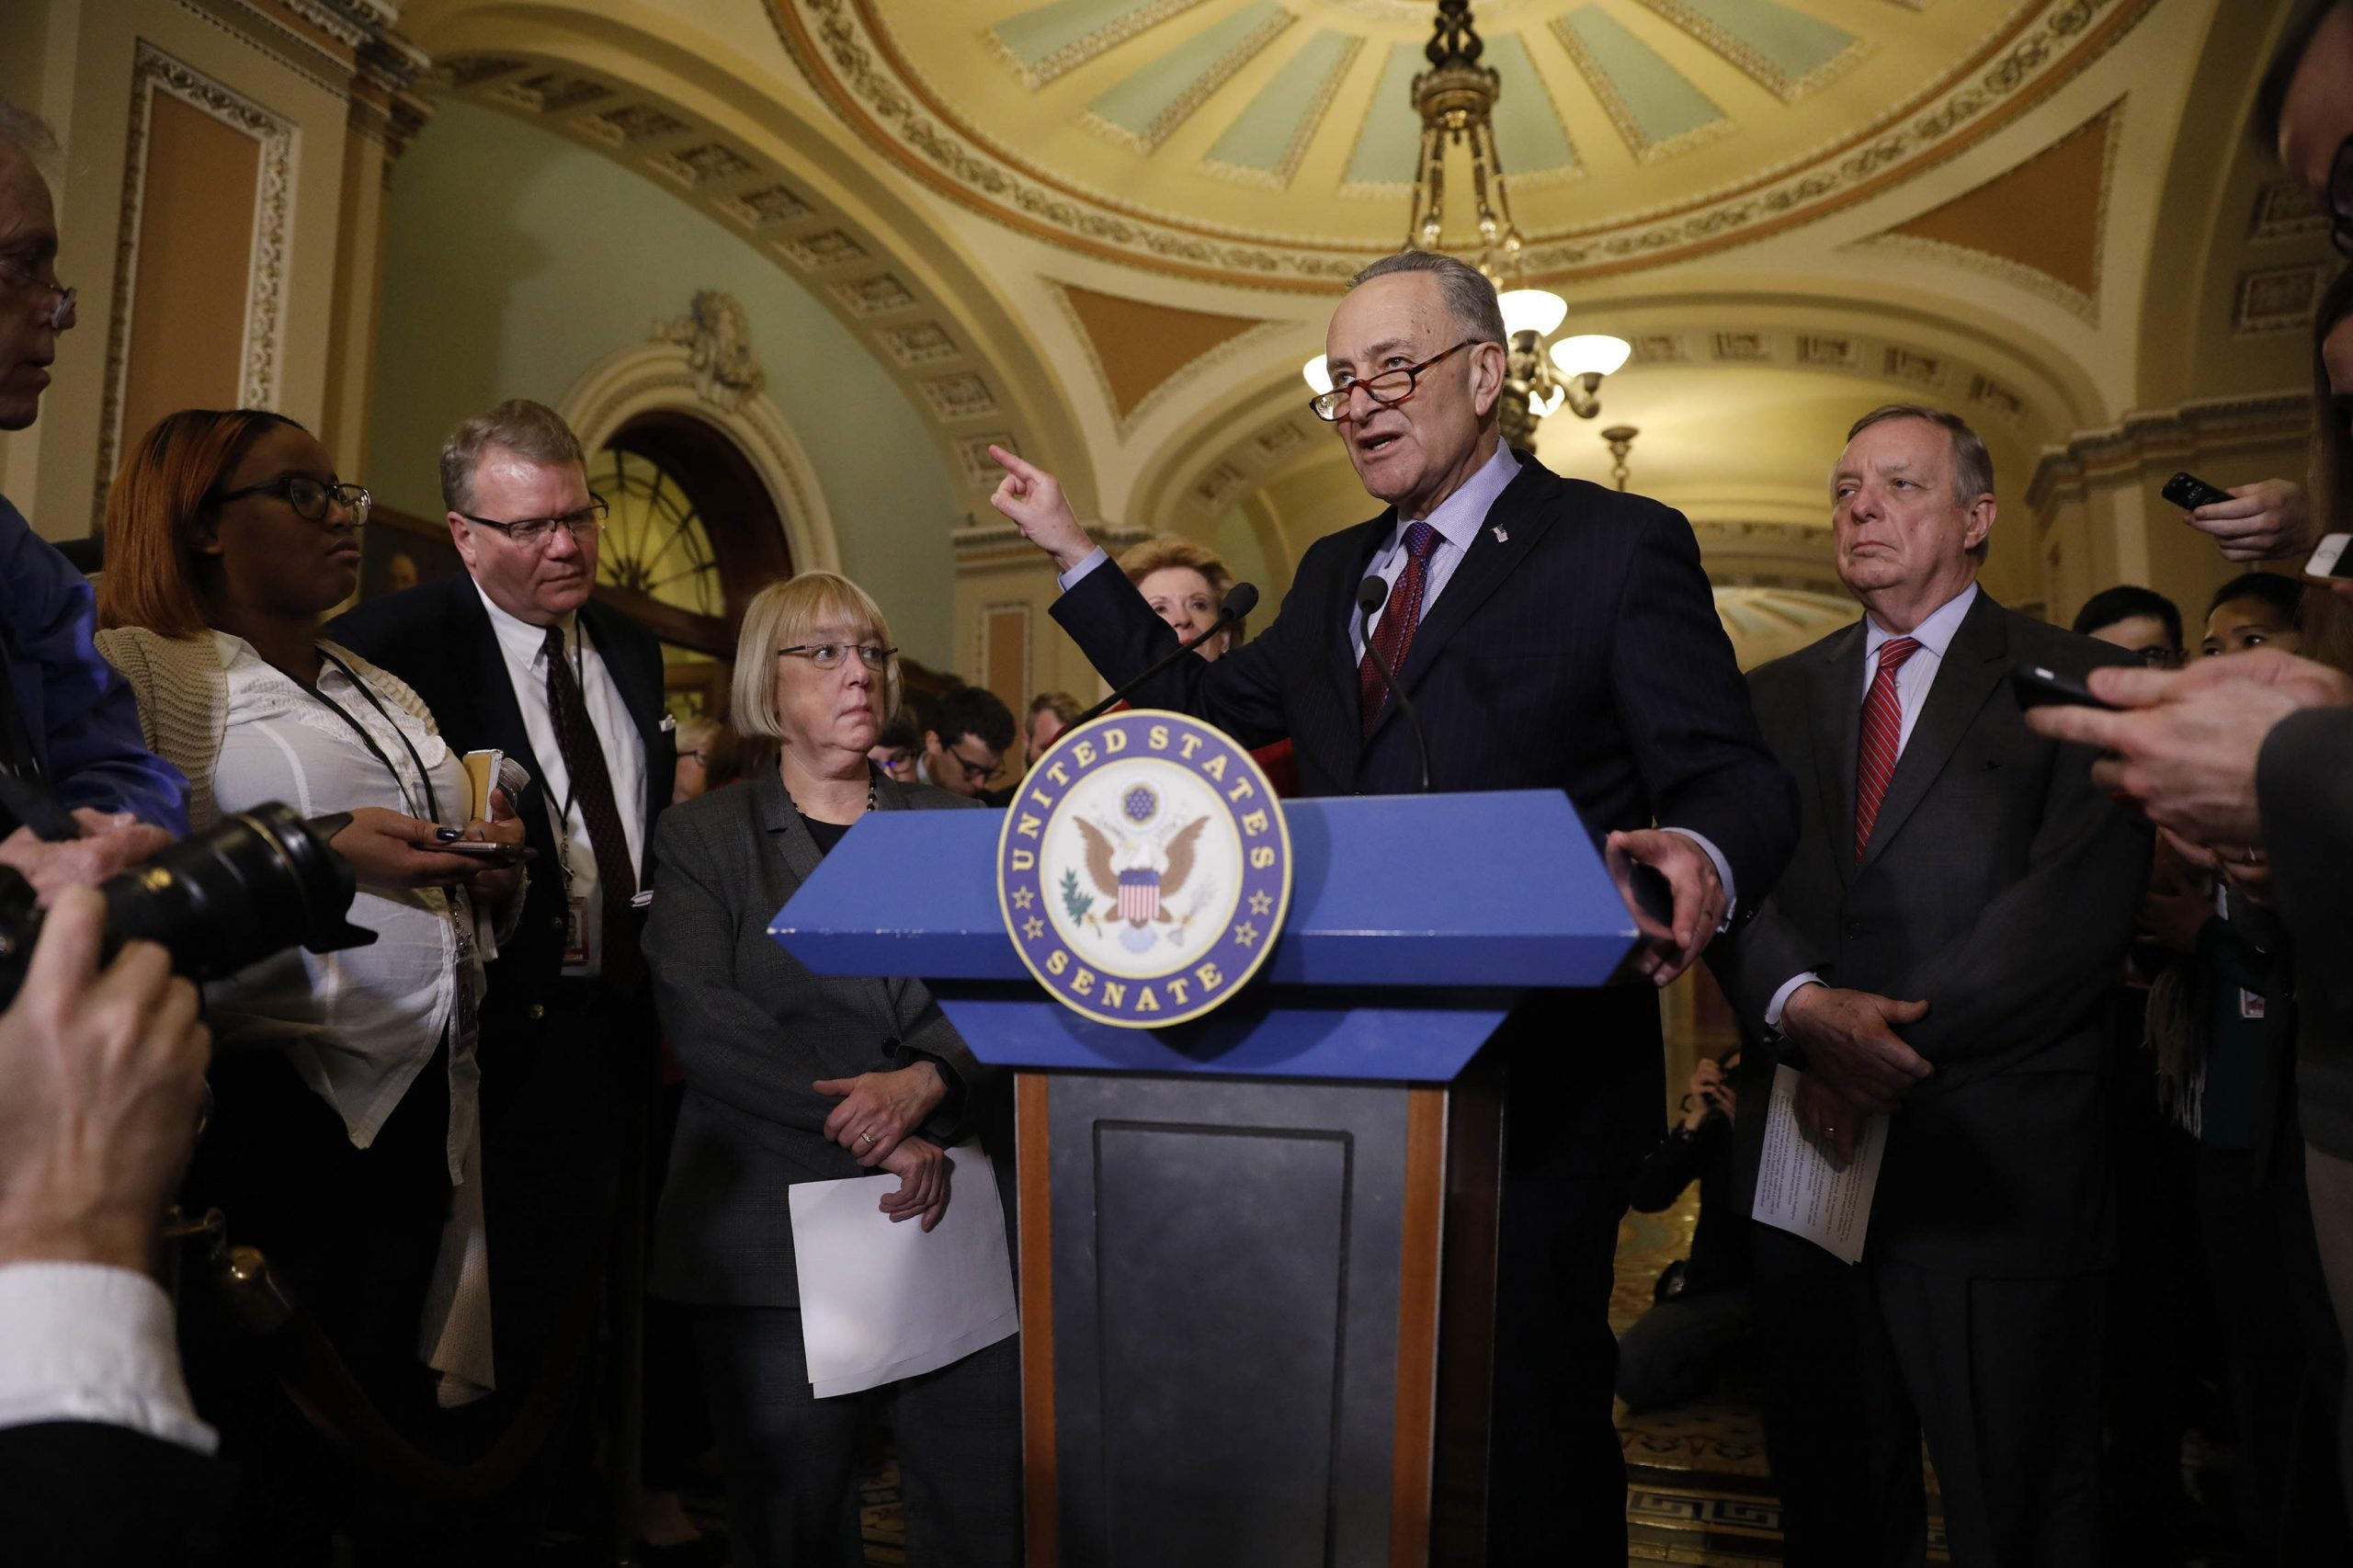 The Democrat plan for opposing Donald Trump's administration